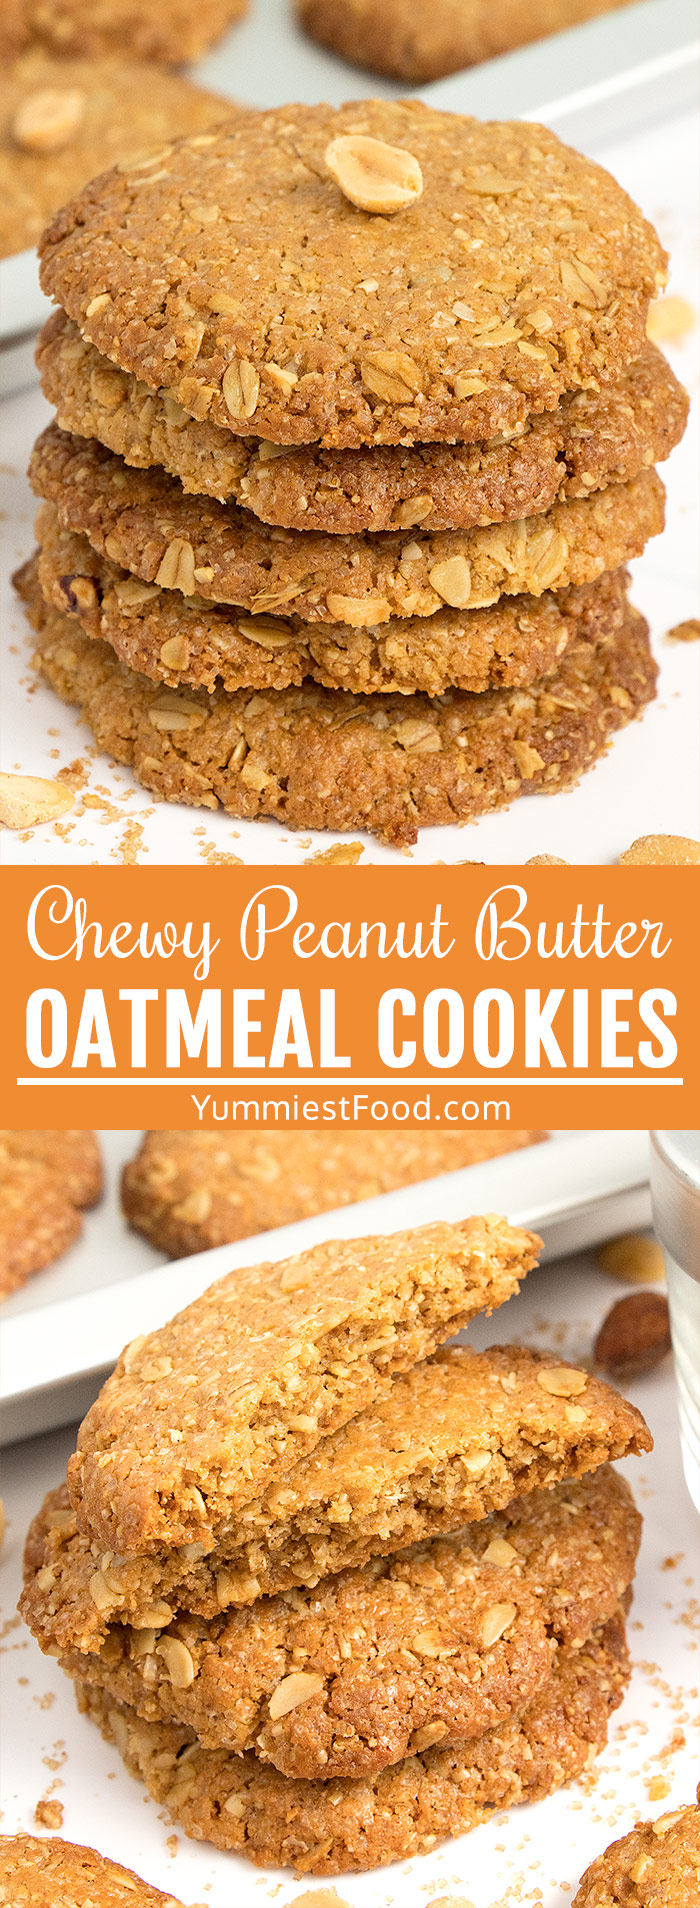 Chewy Peanut Butter Oatmeal Cookies - so tasty, so there's no doubt why they are favorite among the children